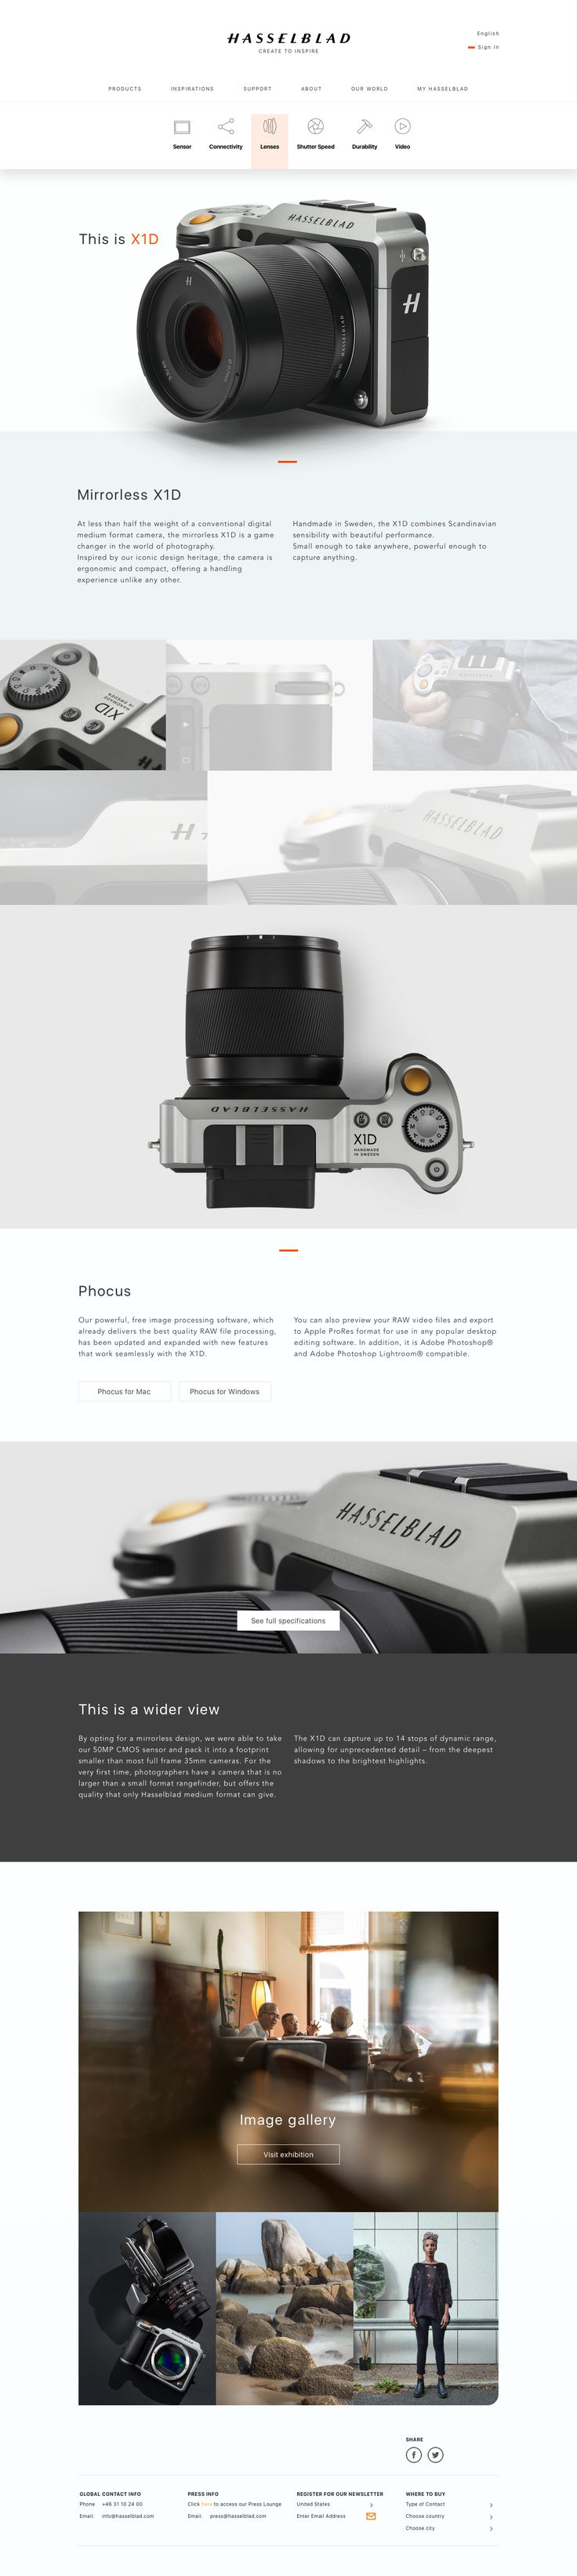 Hasselblad xd1 about page